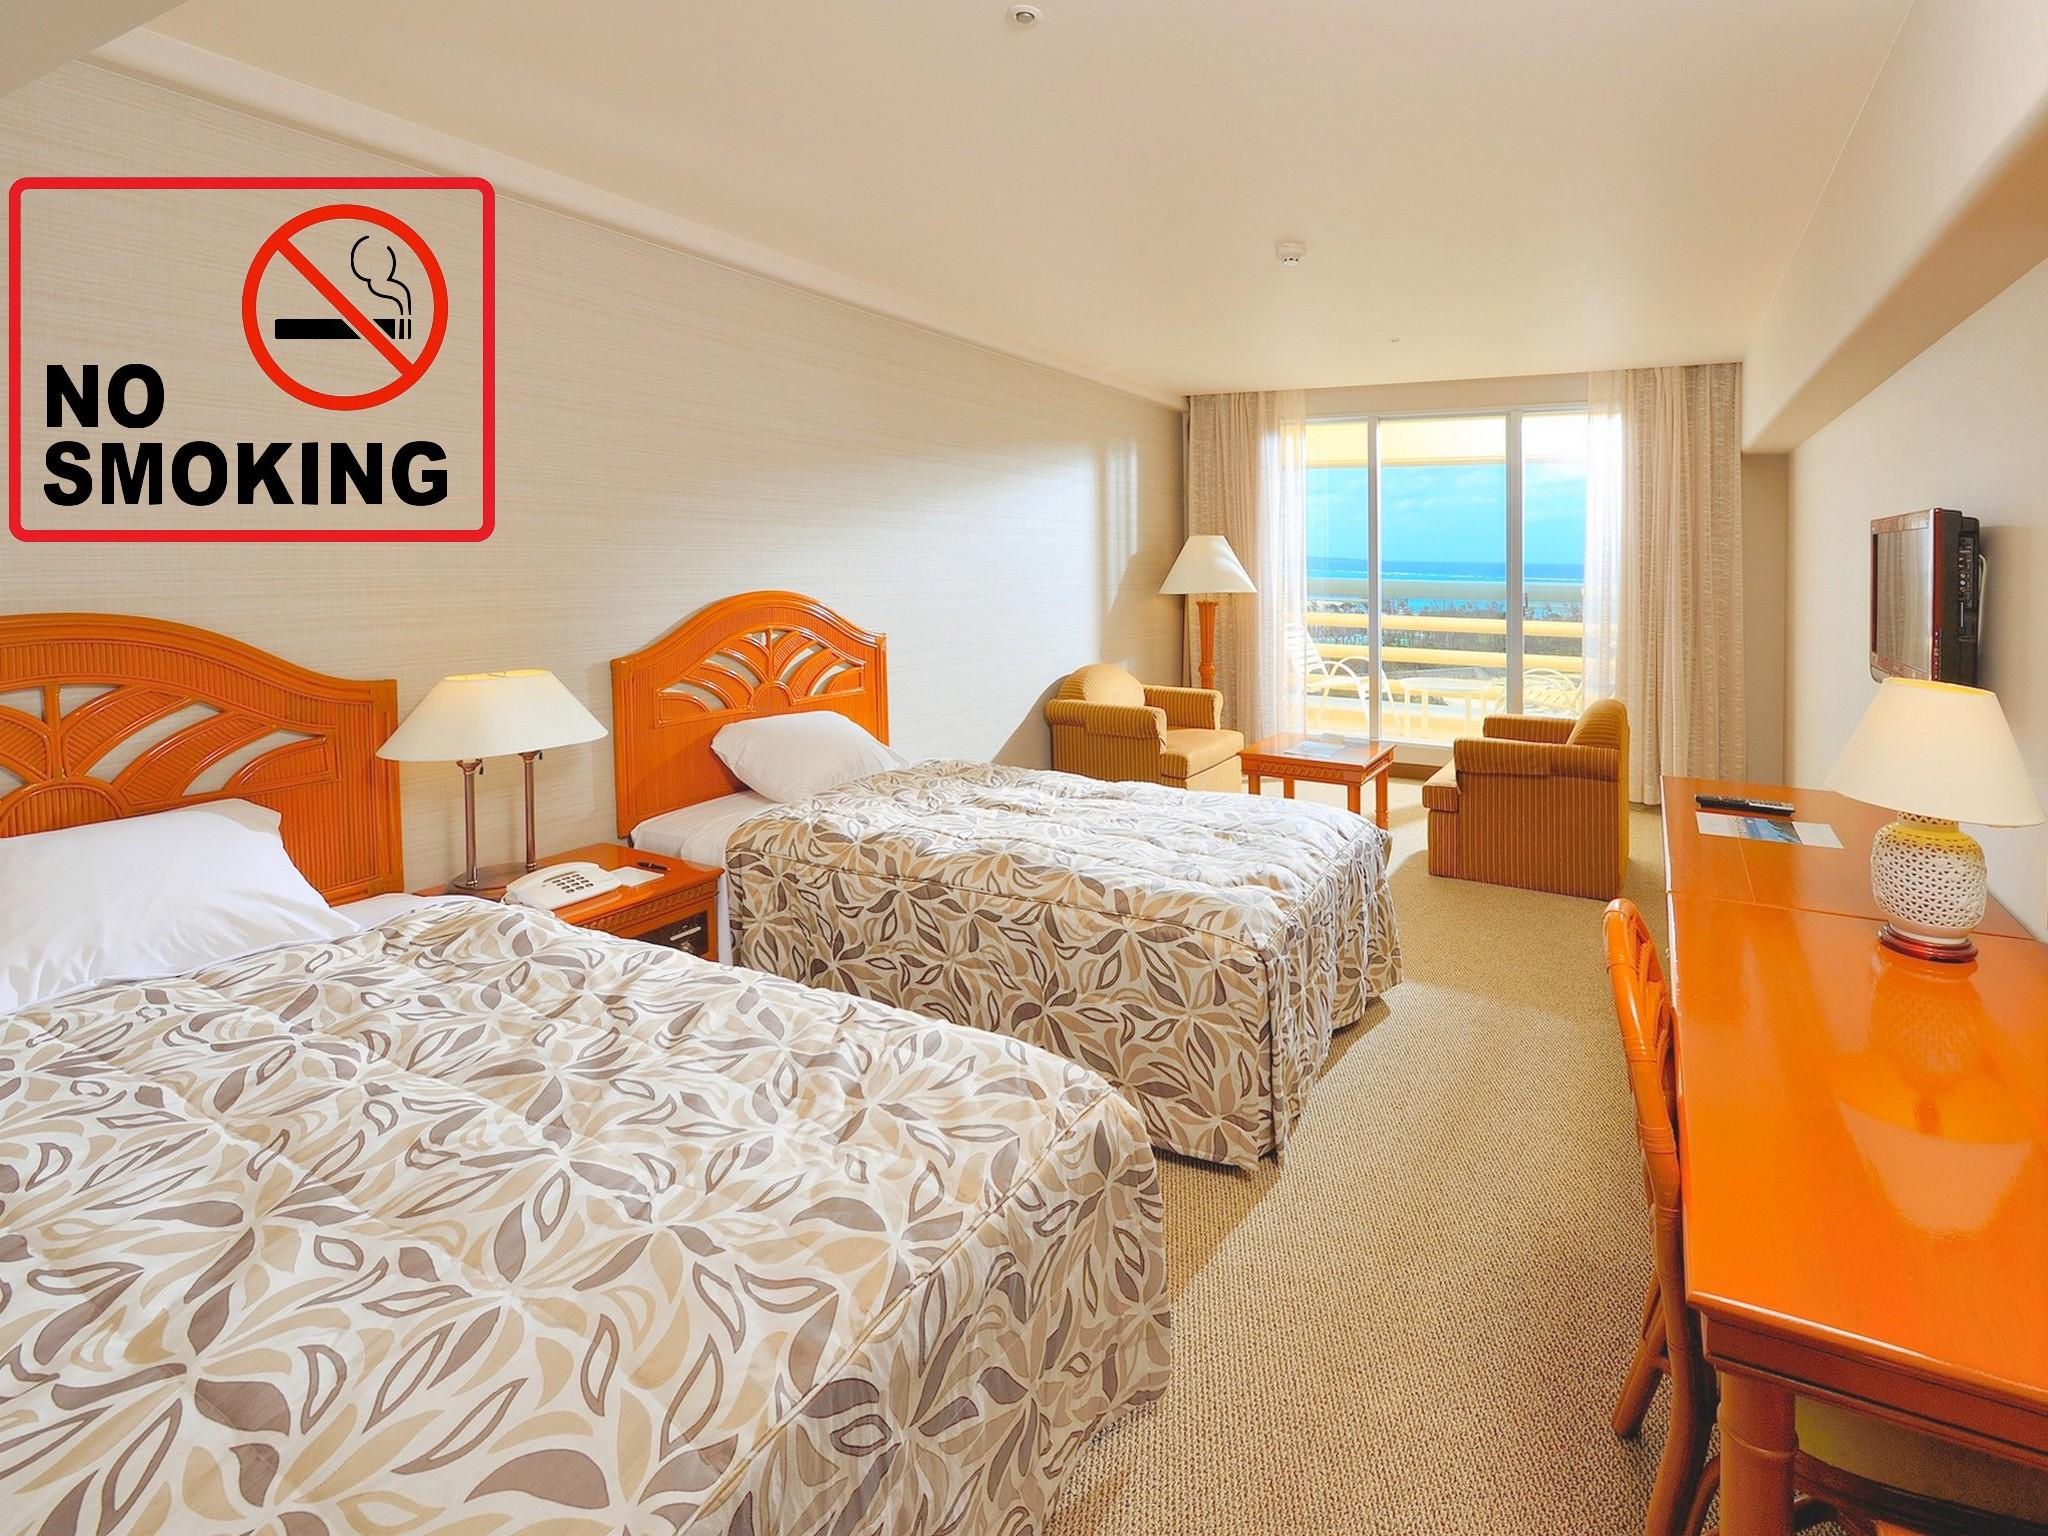 海景標準房B - 禁菸 (Standard Ocean View Room B - Non-Smoking)